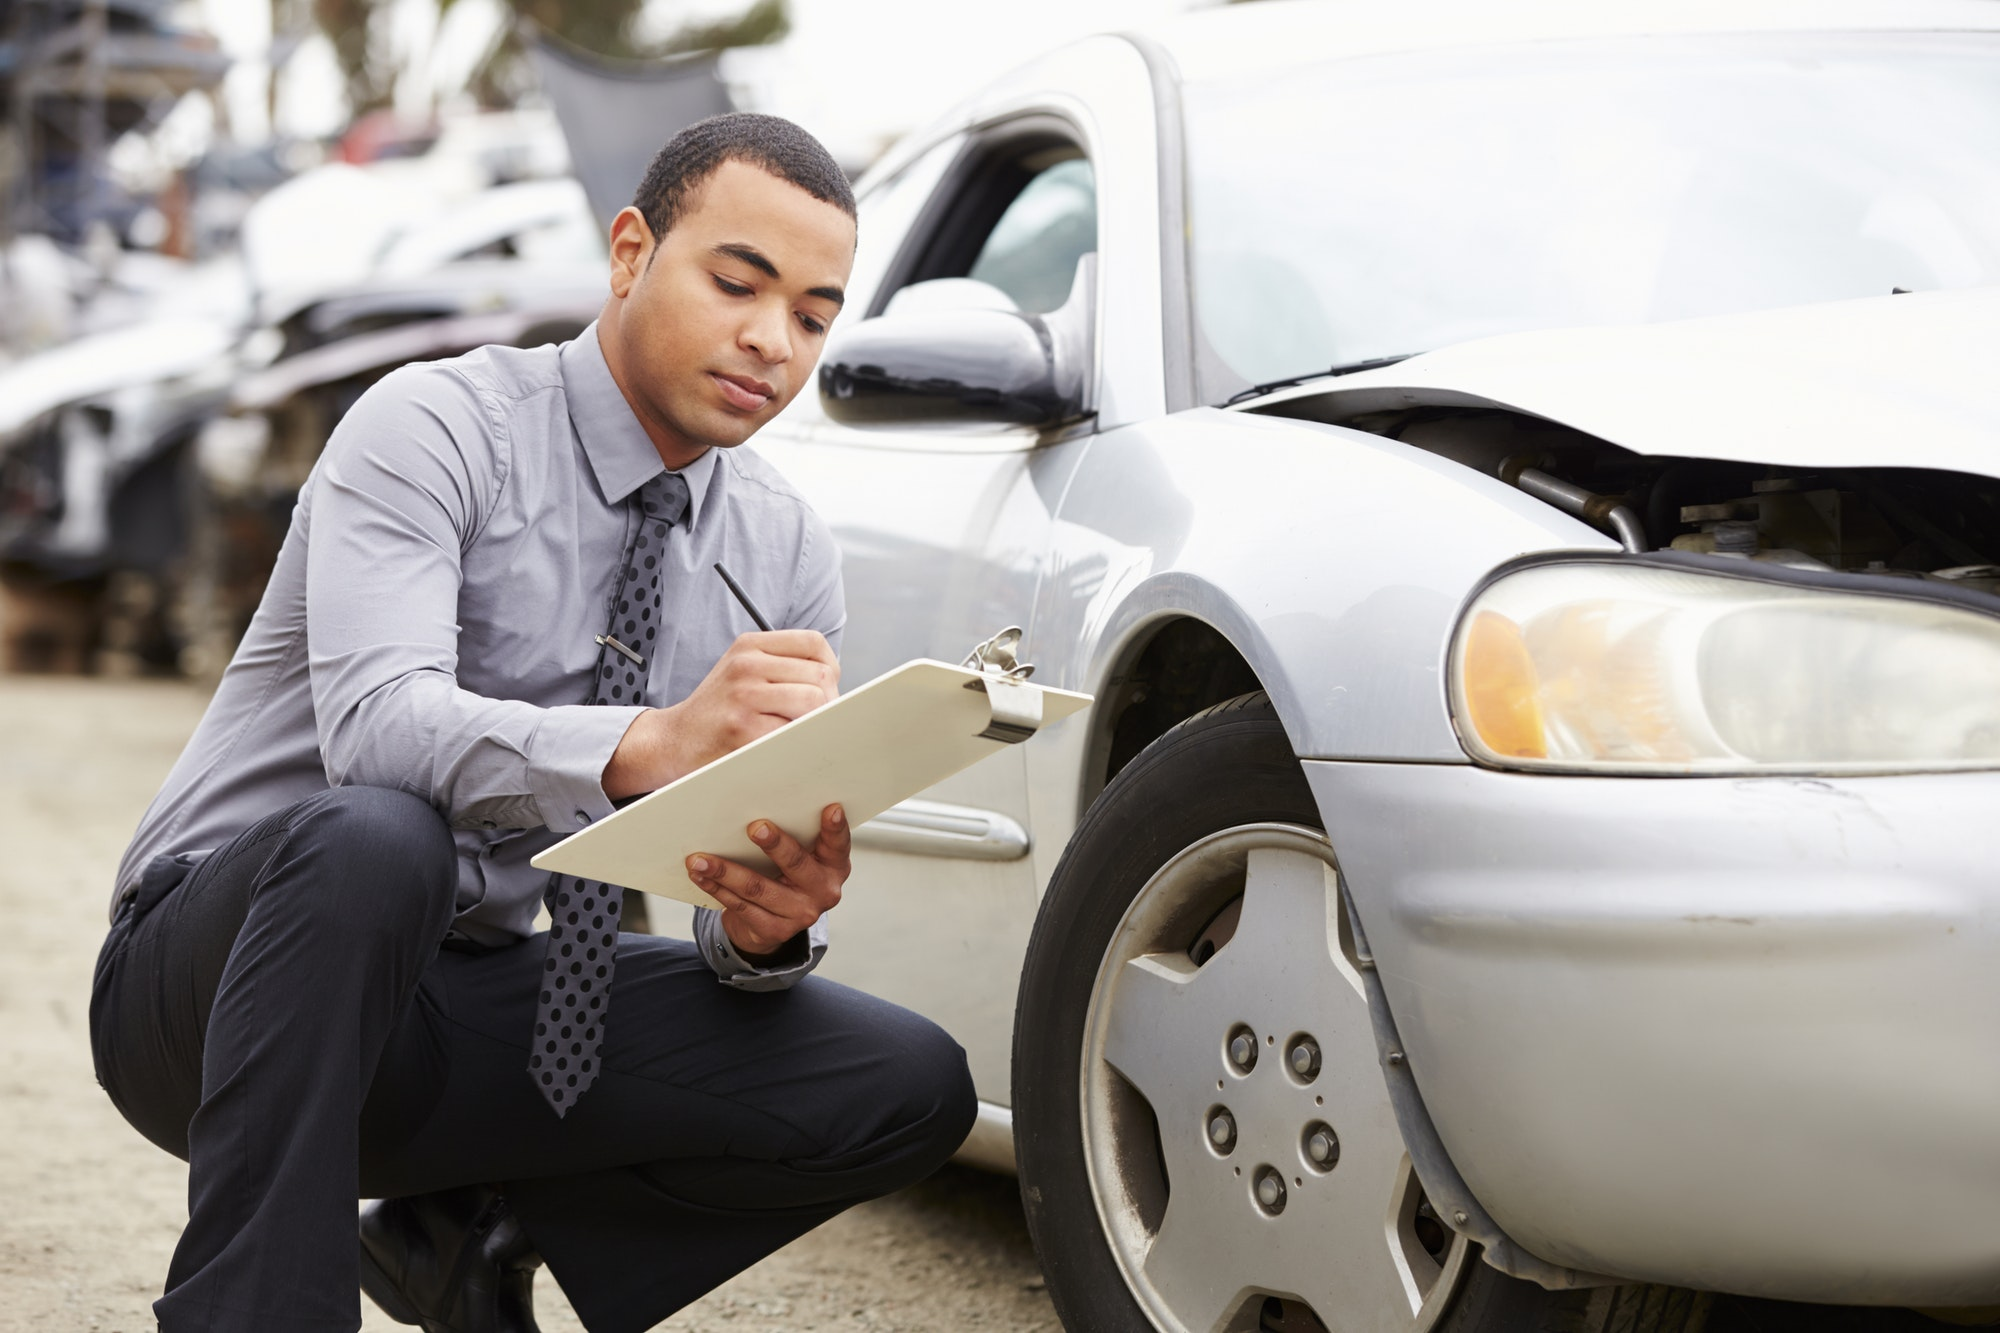 Get Your Salvage Certificate For Your Totaled Car. Car being inspected.